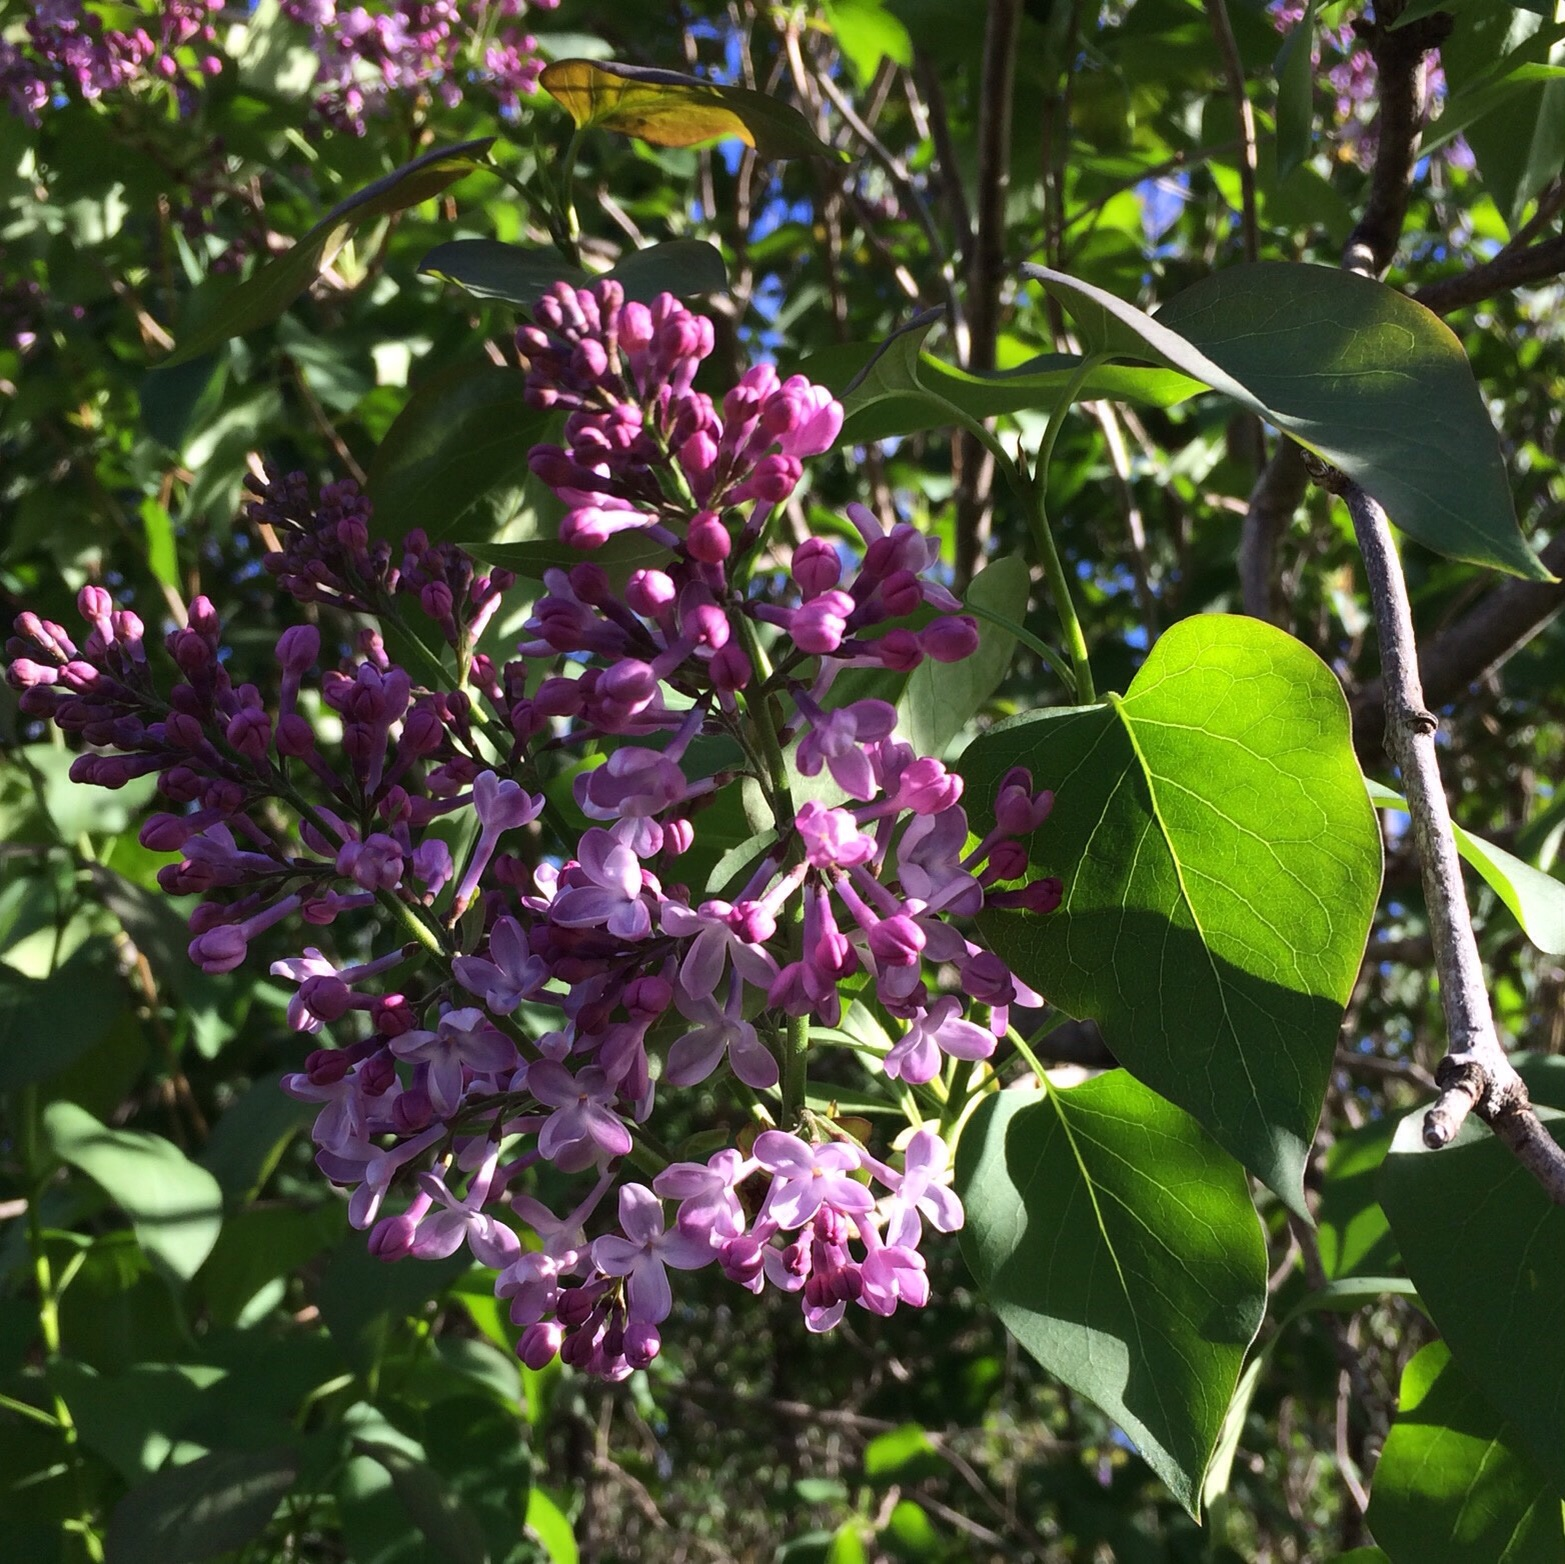 My birthday generally falls at the same time lilacs bloom in this corner of central Maine and this year was no exception.